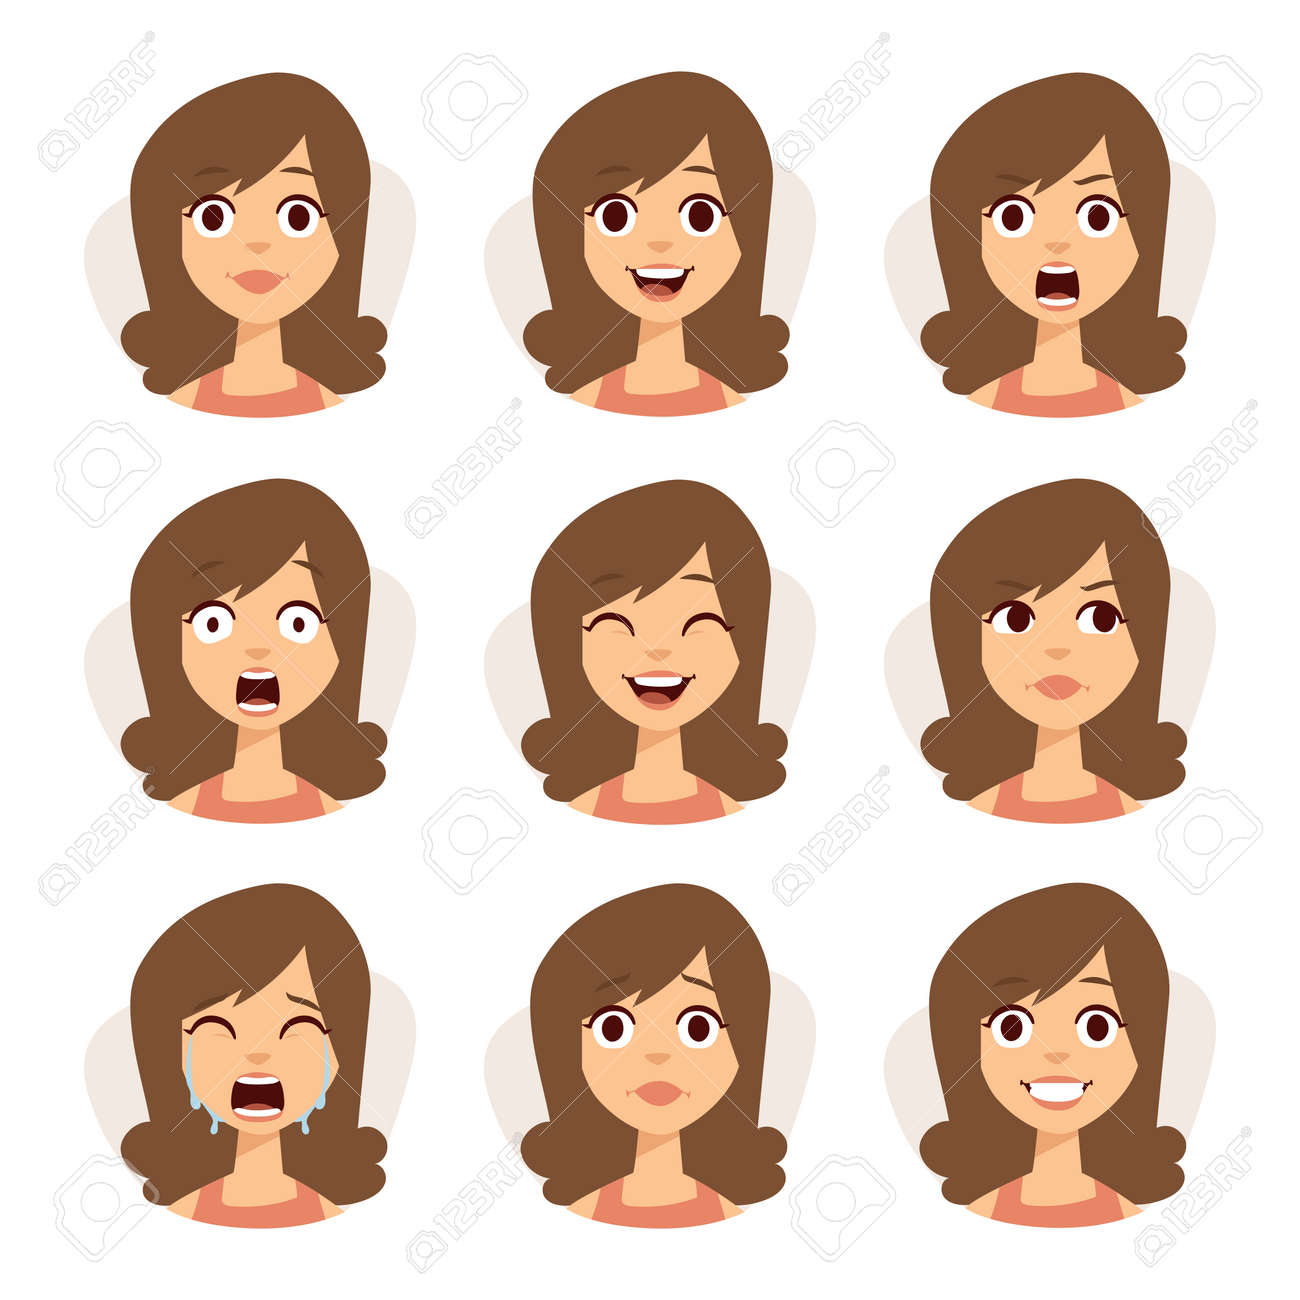 Woman emotions expression icons and beauty woman emotions vector. Isolated set of woman avatar expressions face emotions vector illustration. - 54067820